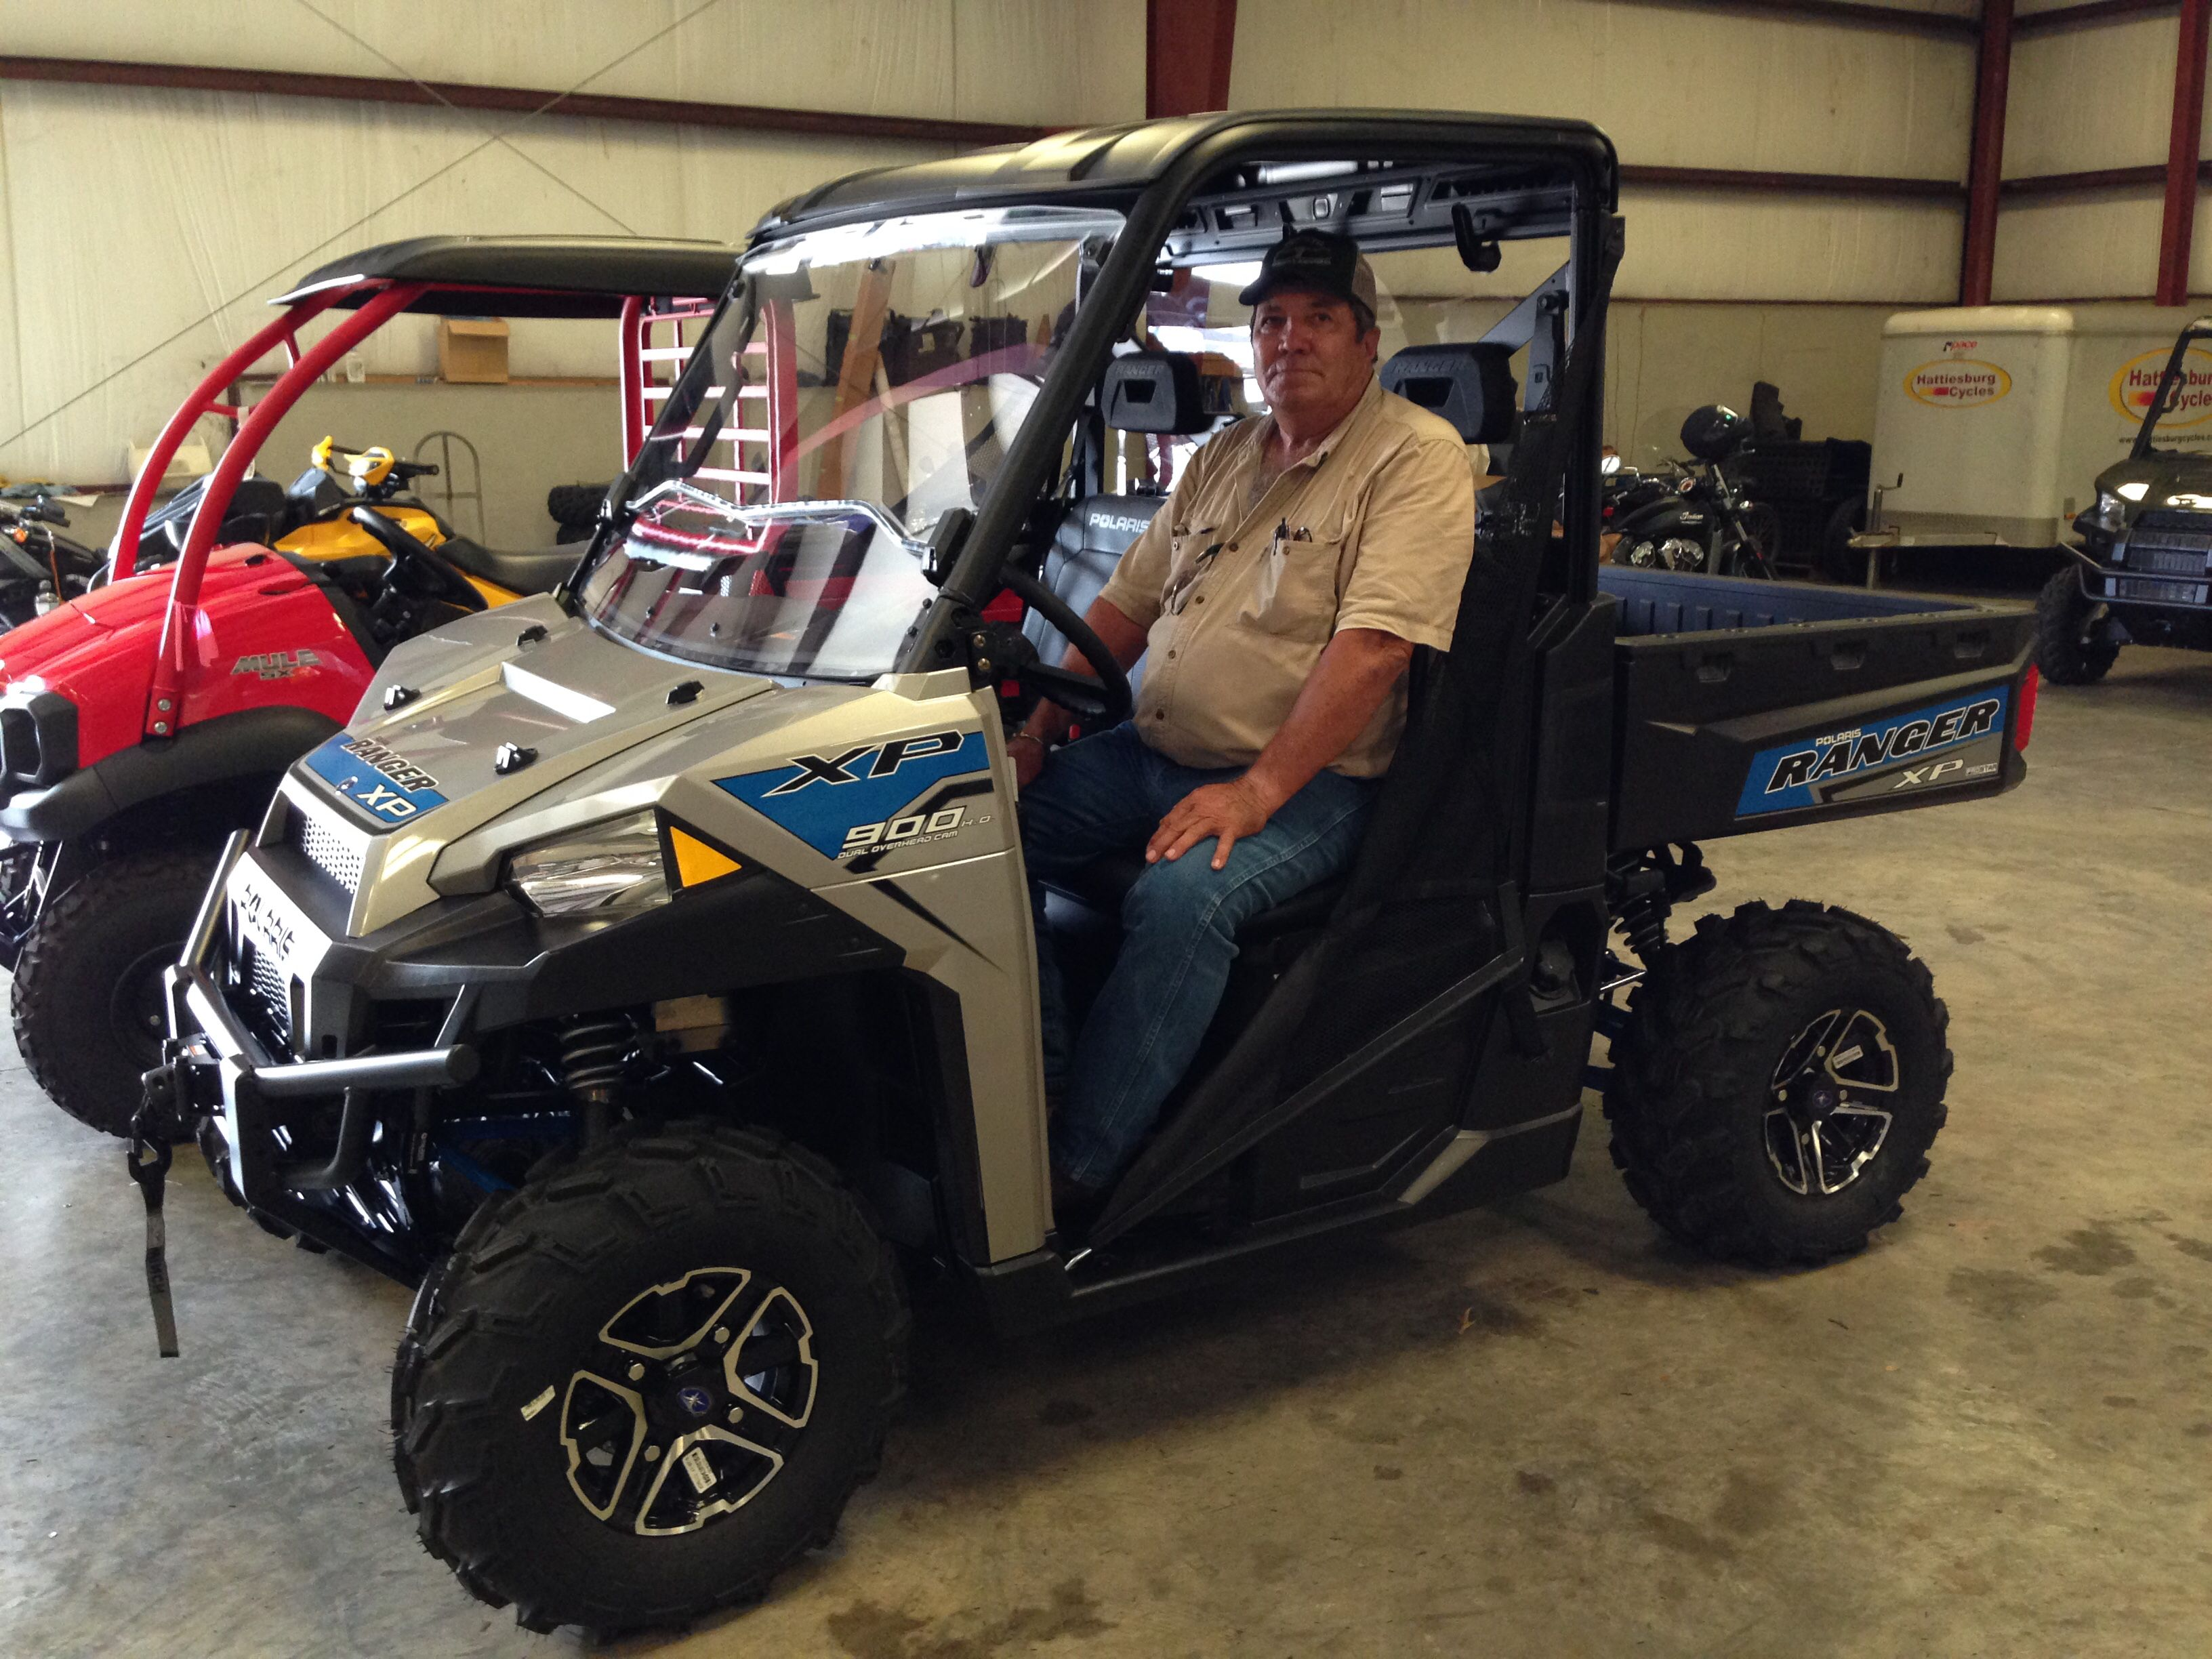 Congratulations to Terry Sanford from Ellisville MS for purchasing